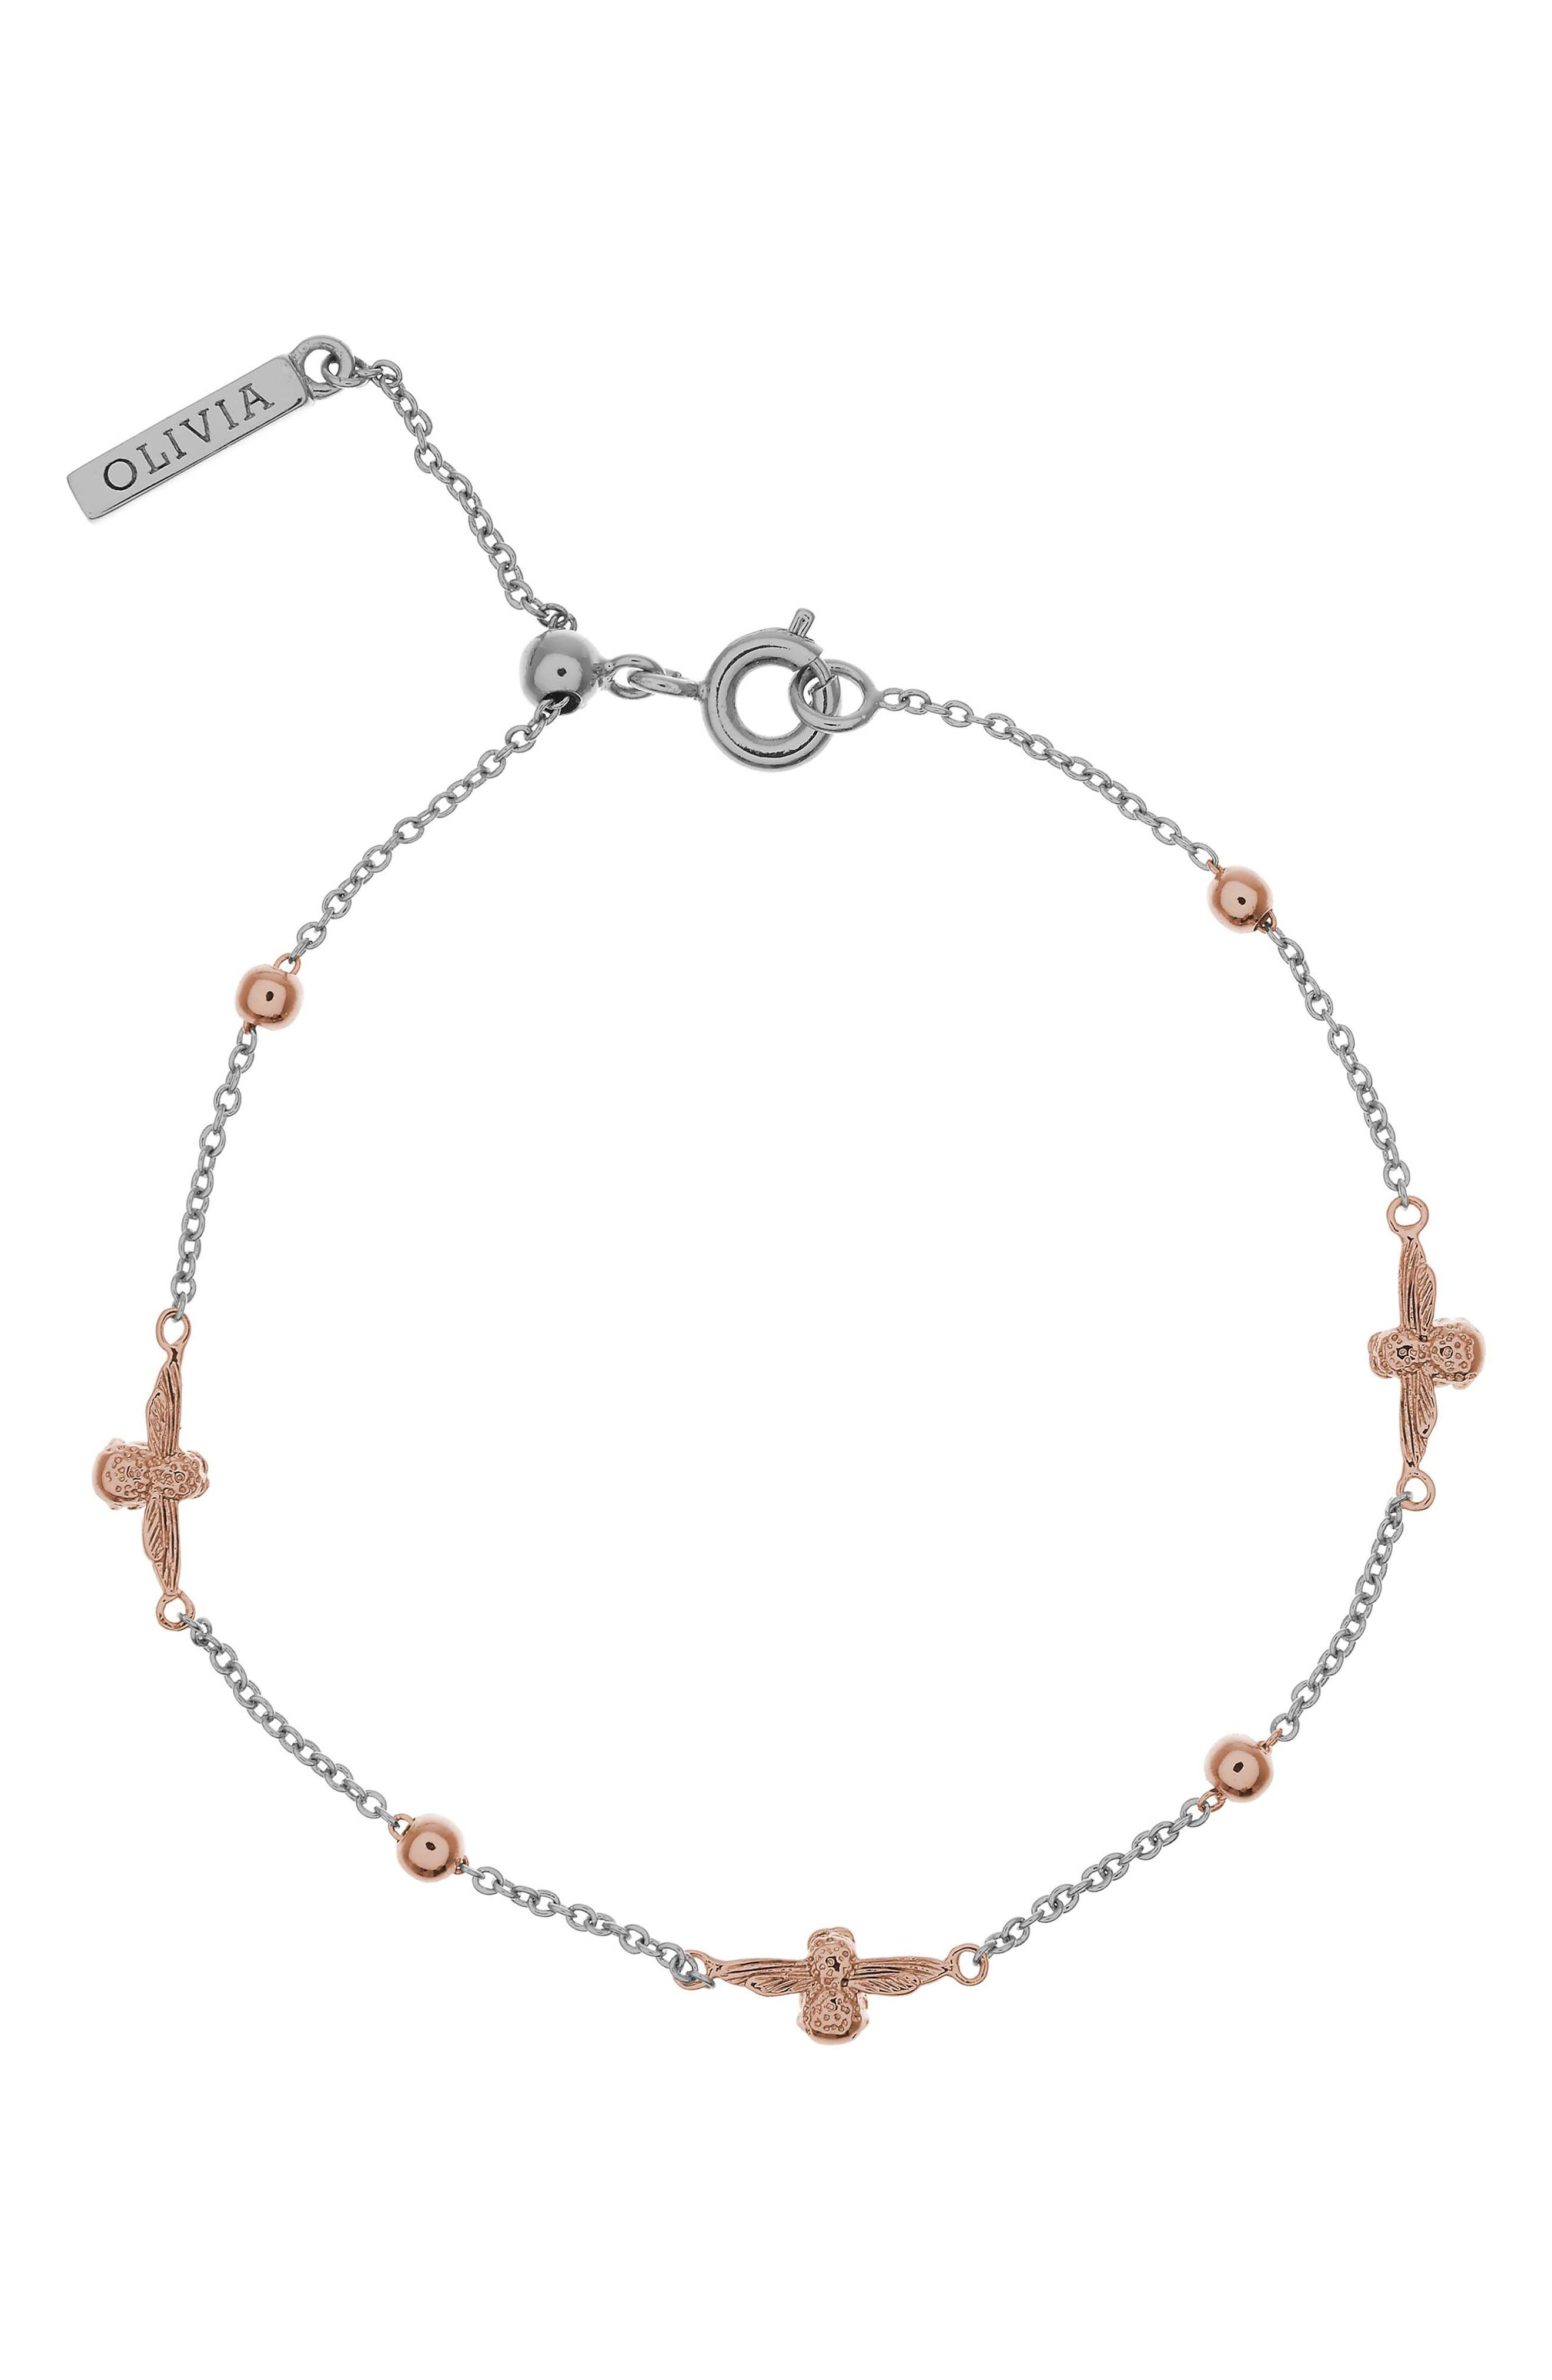 Queen Bee Ball Chain Bracelet,                             Main thumbnail 1, color,                             SILVER/ ROSE GOLD